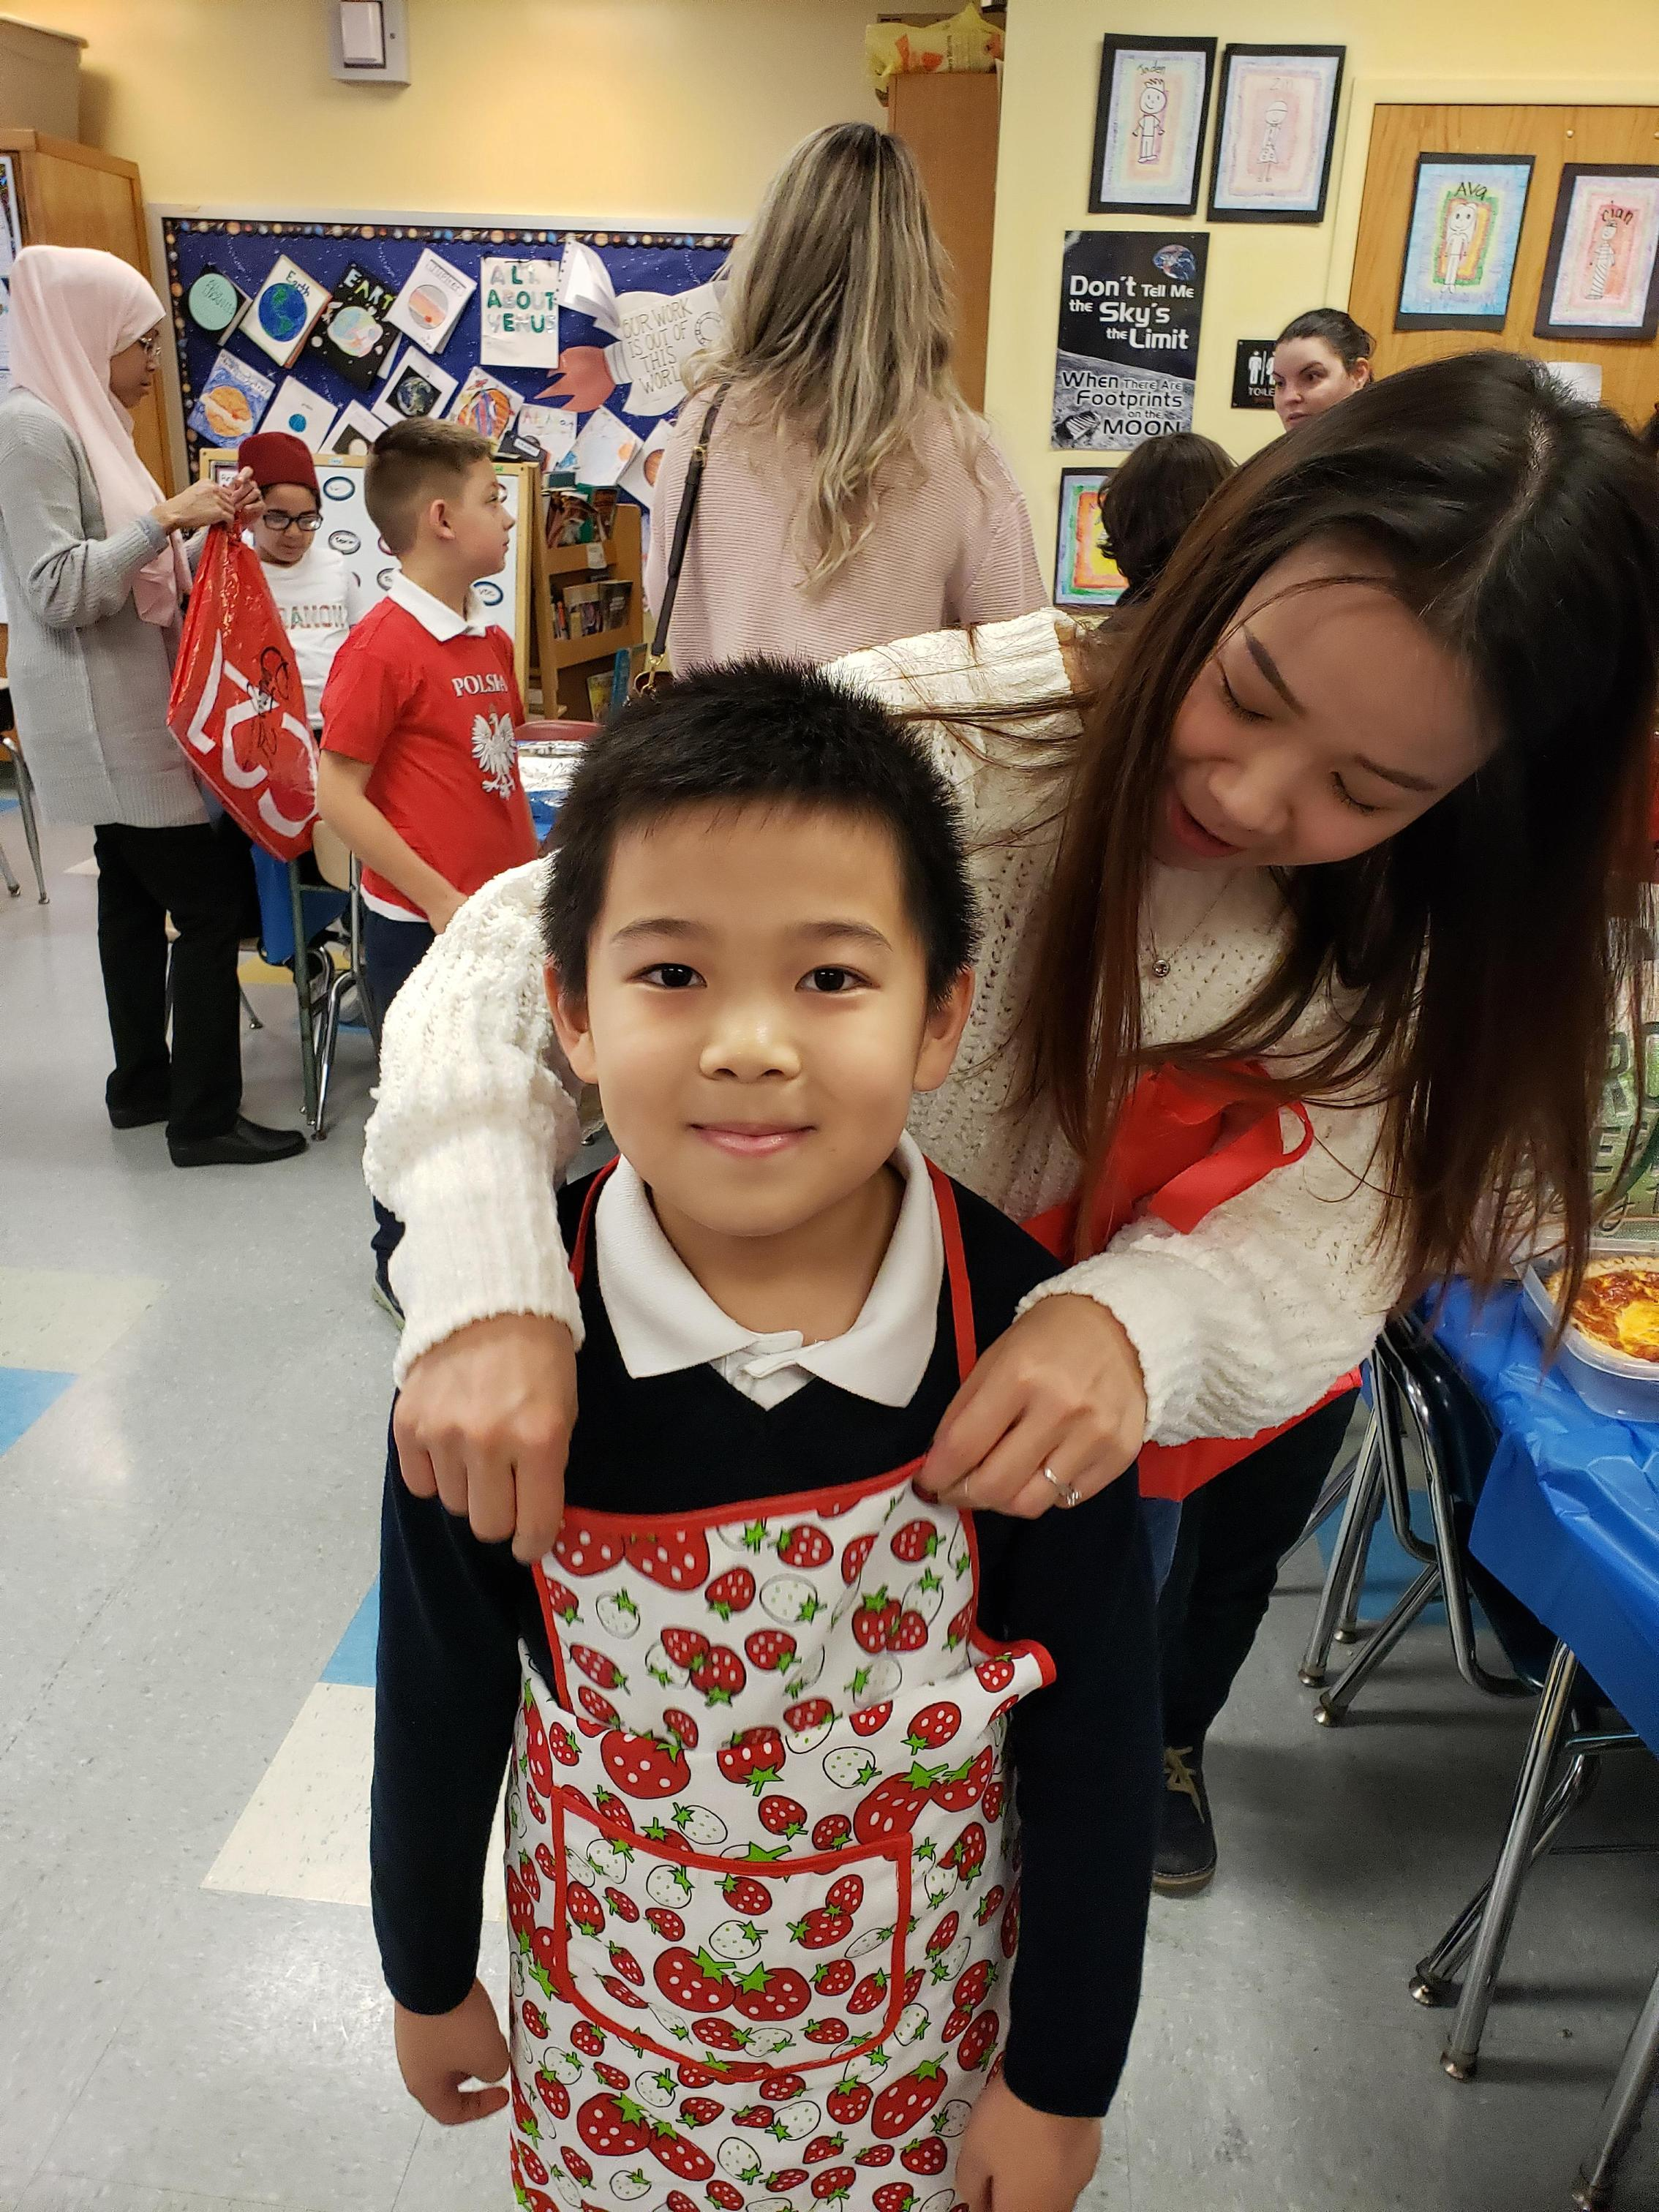 mom placing apron on son